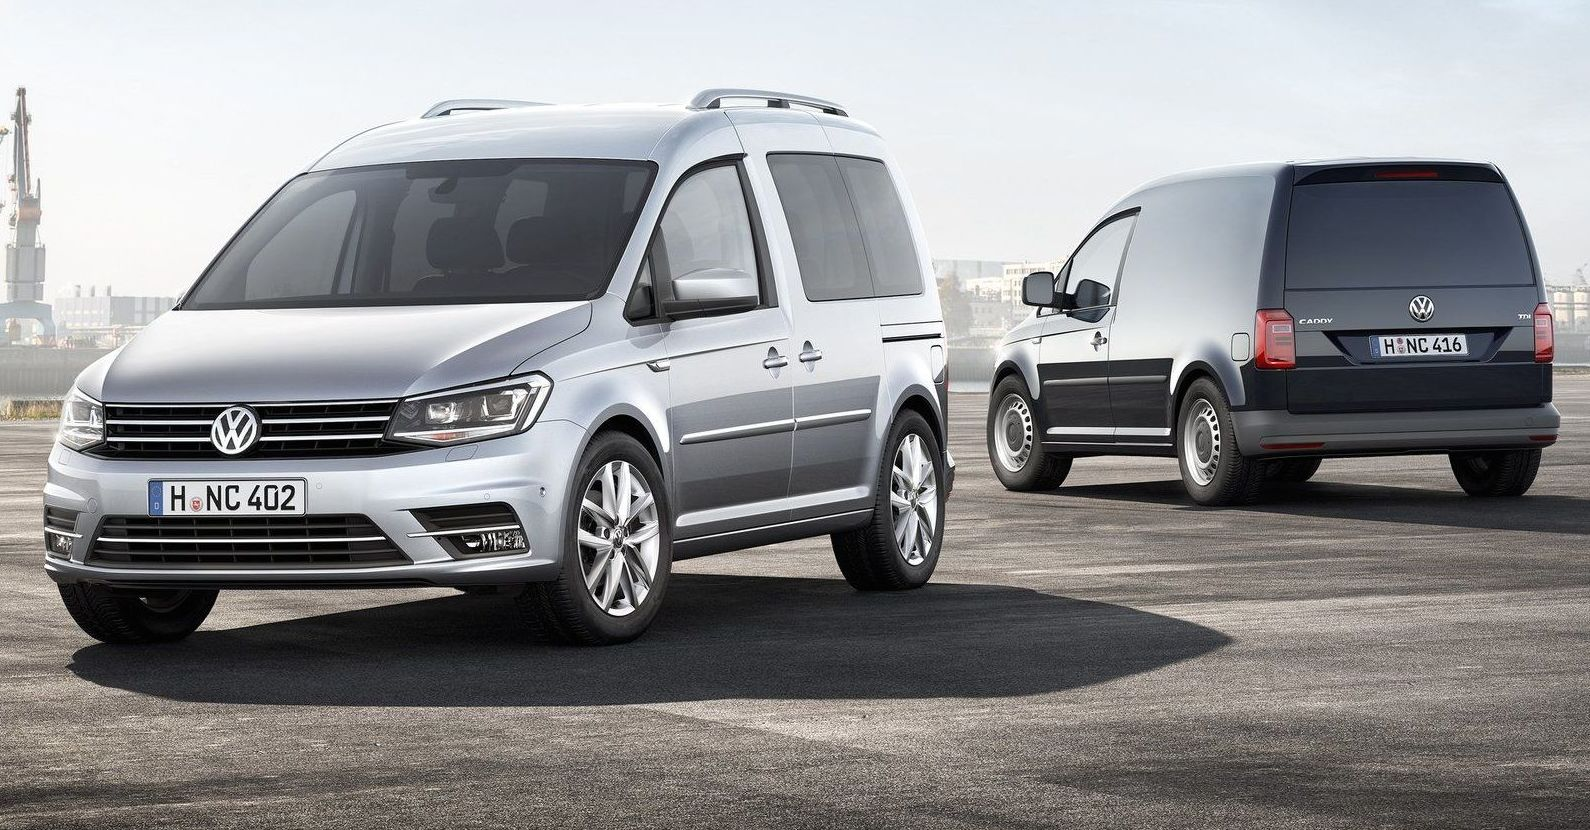 NUEVA VW CADDY Y VW TRANSPORTES